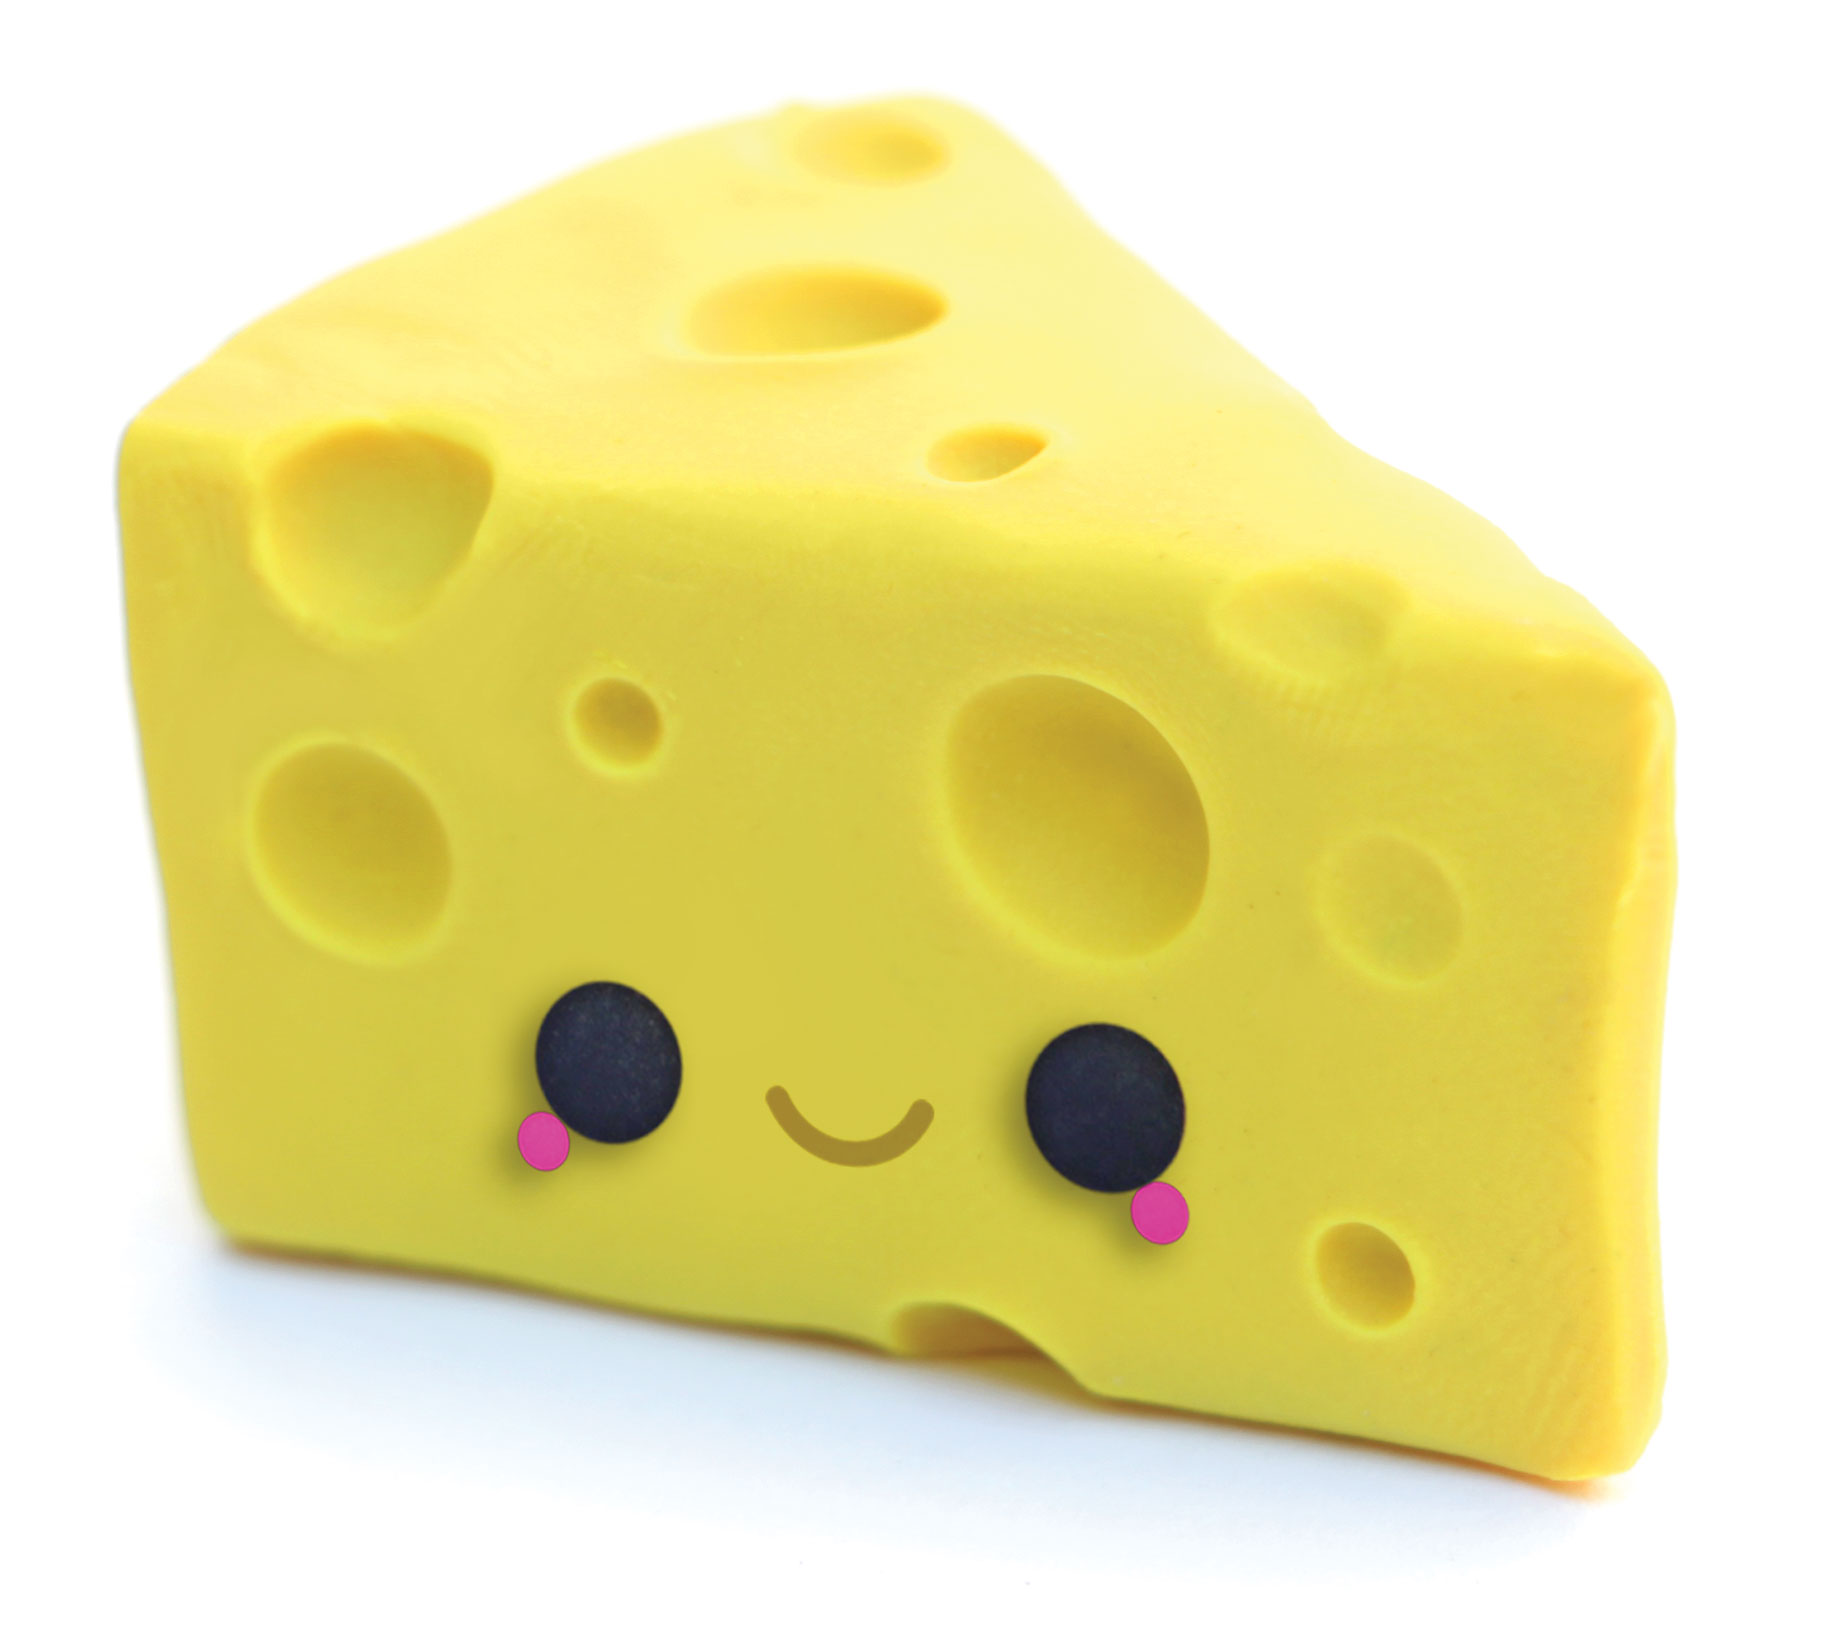 IMAGE-2---cheese.jpg